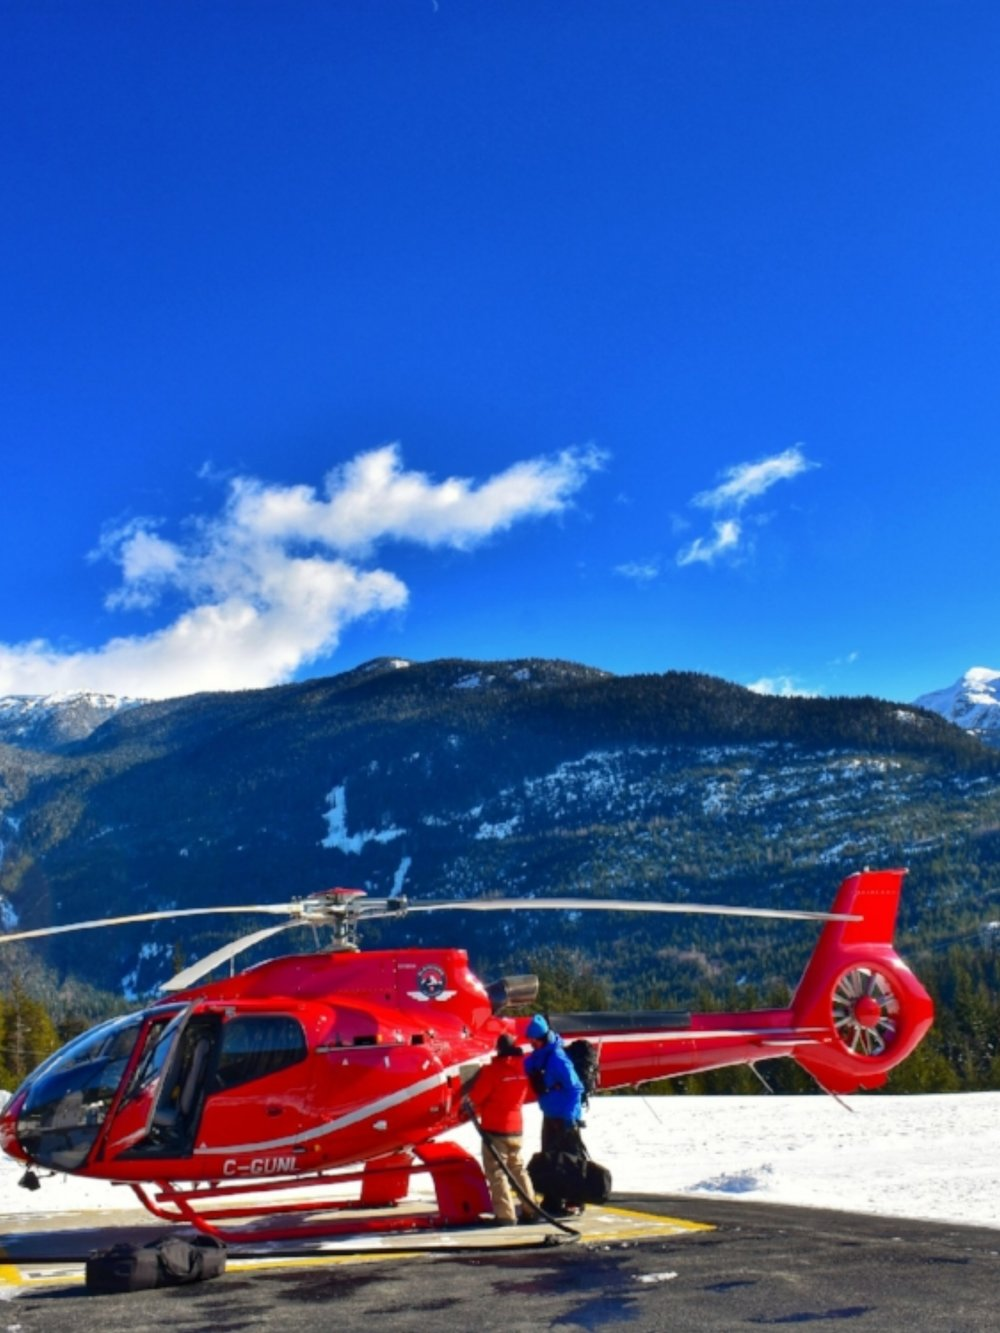 My awaiting helicoptor at the Whistler Heliport